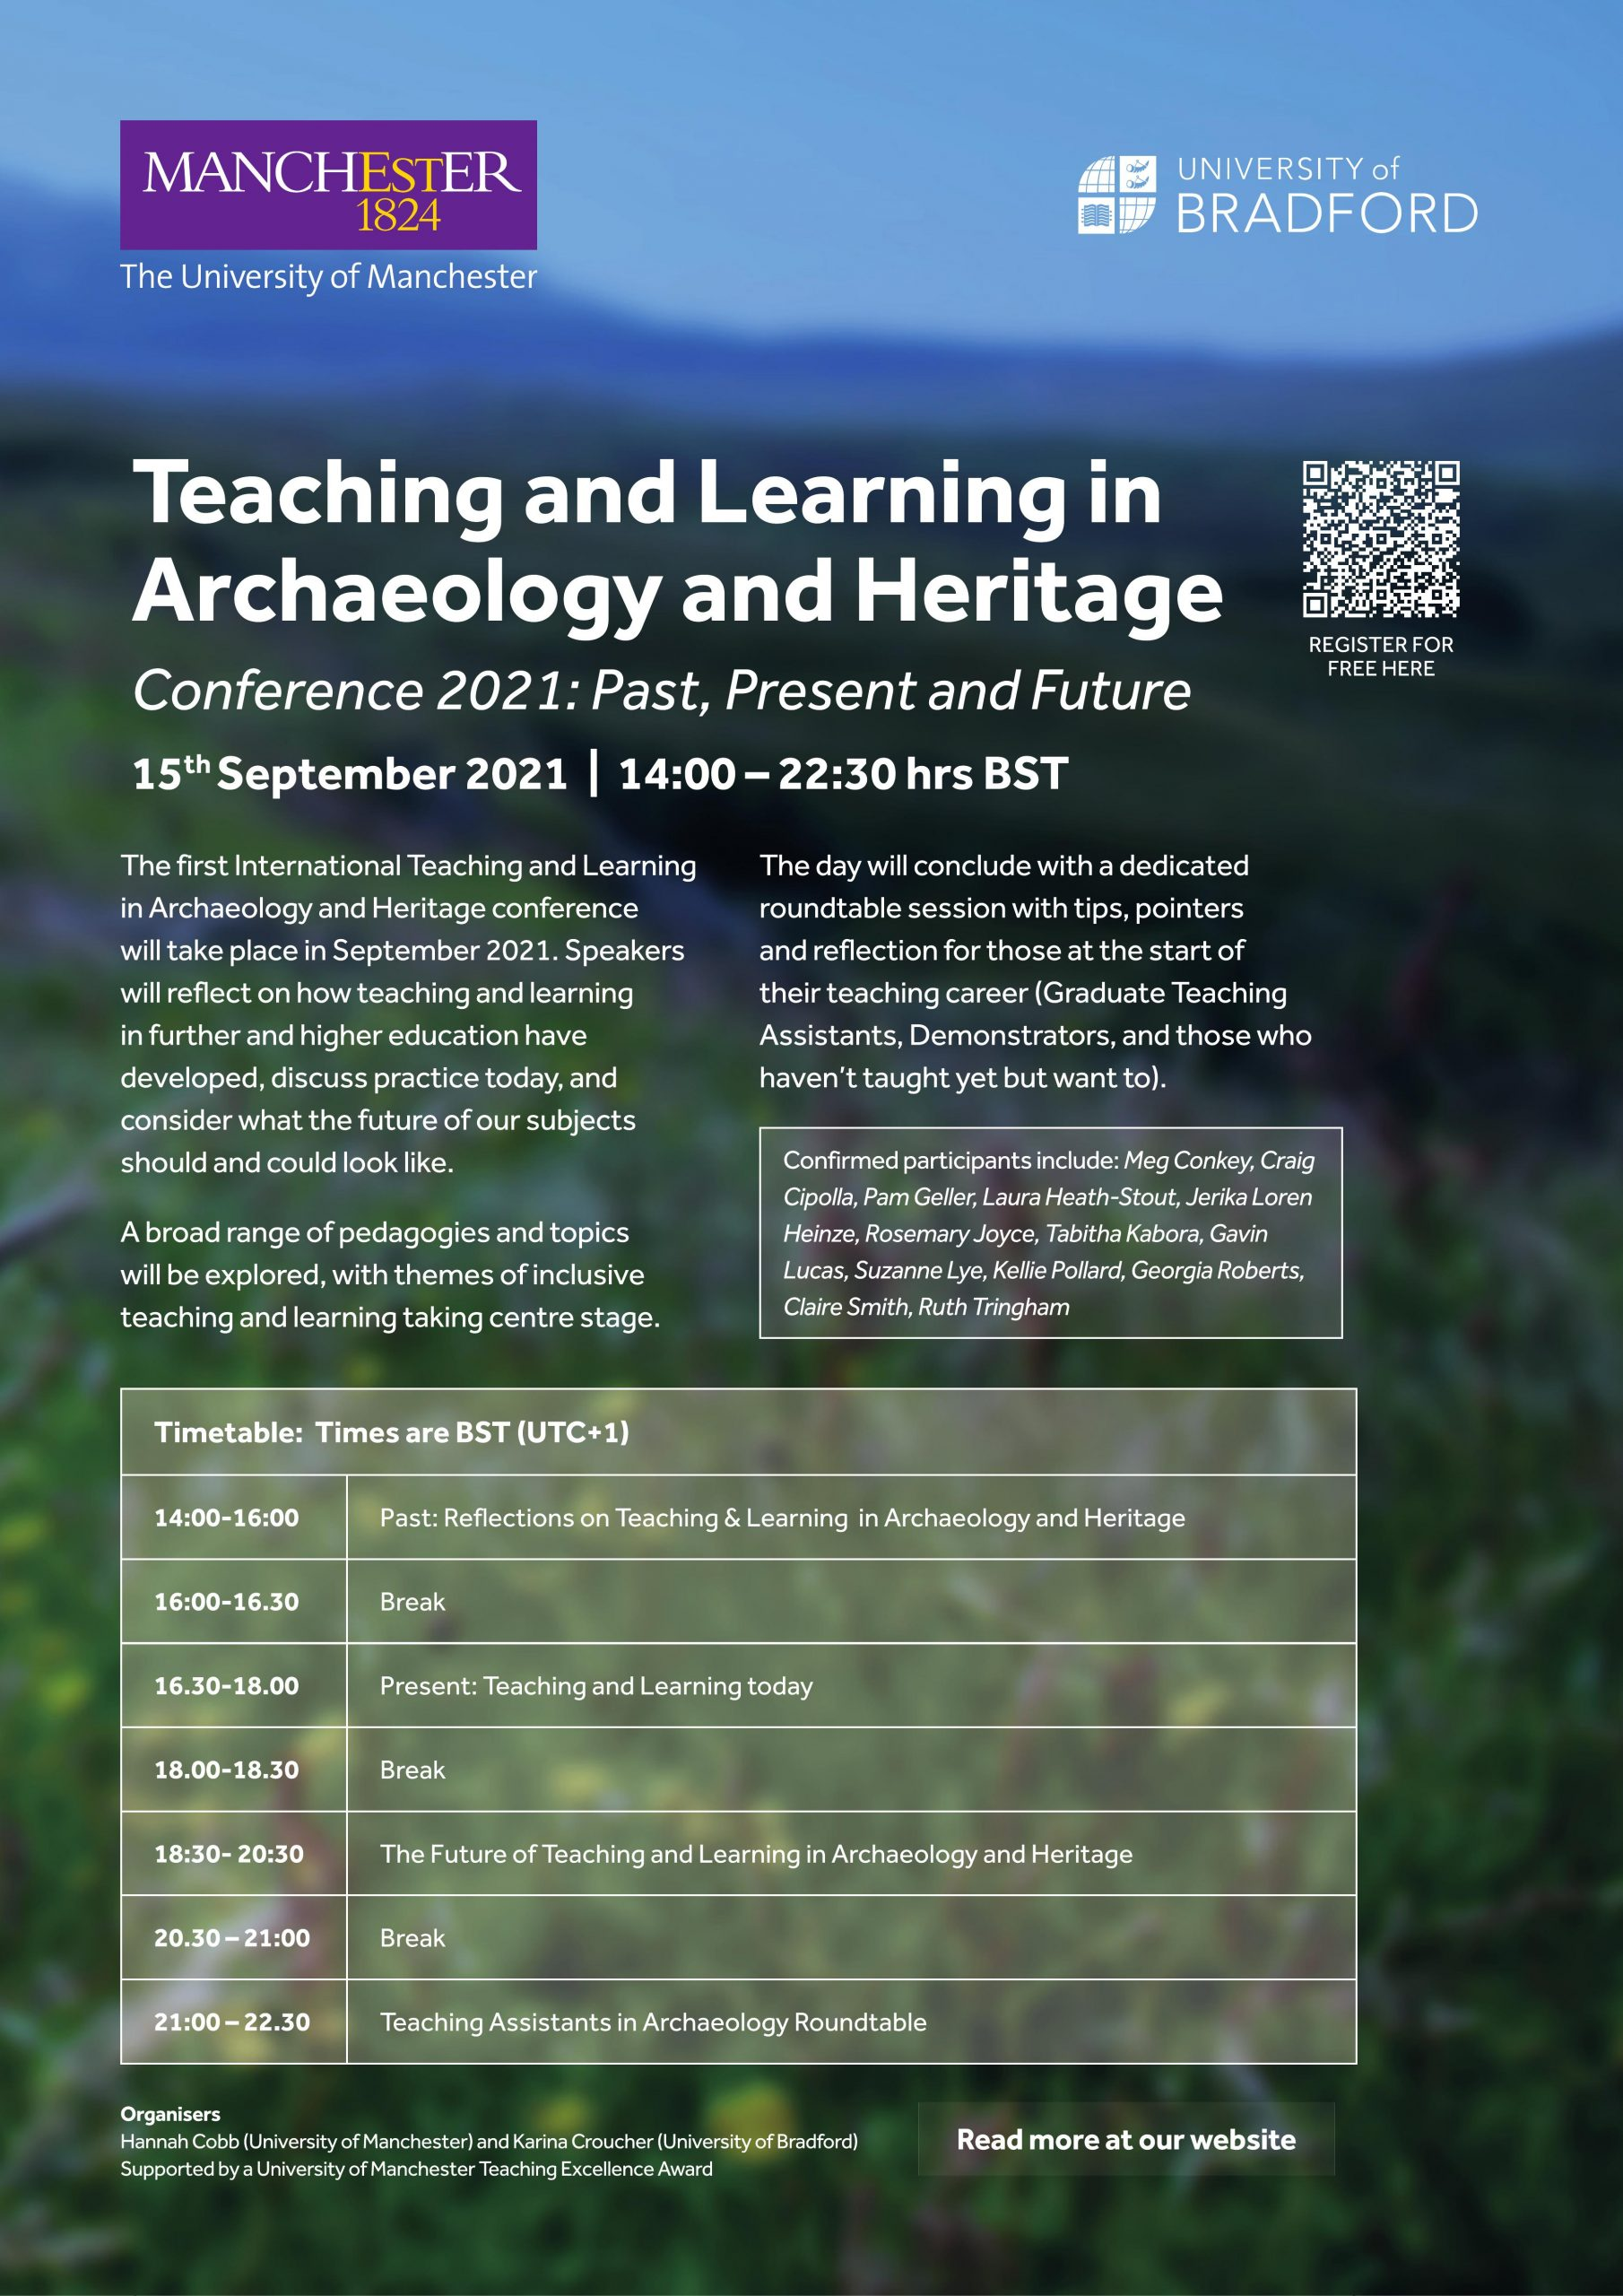 The advertising poster for the Teaching and Learning in Archaeology and Heritage conference has all the details for it and the PDF is available here: https://archaeologytandl.files.wordpress.com/2021/09/teachinglearninginarchheritage_programme-5.pdf